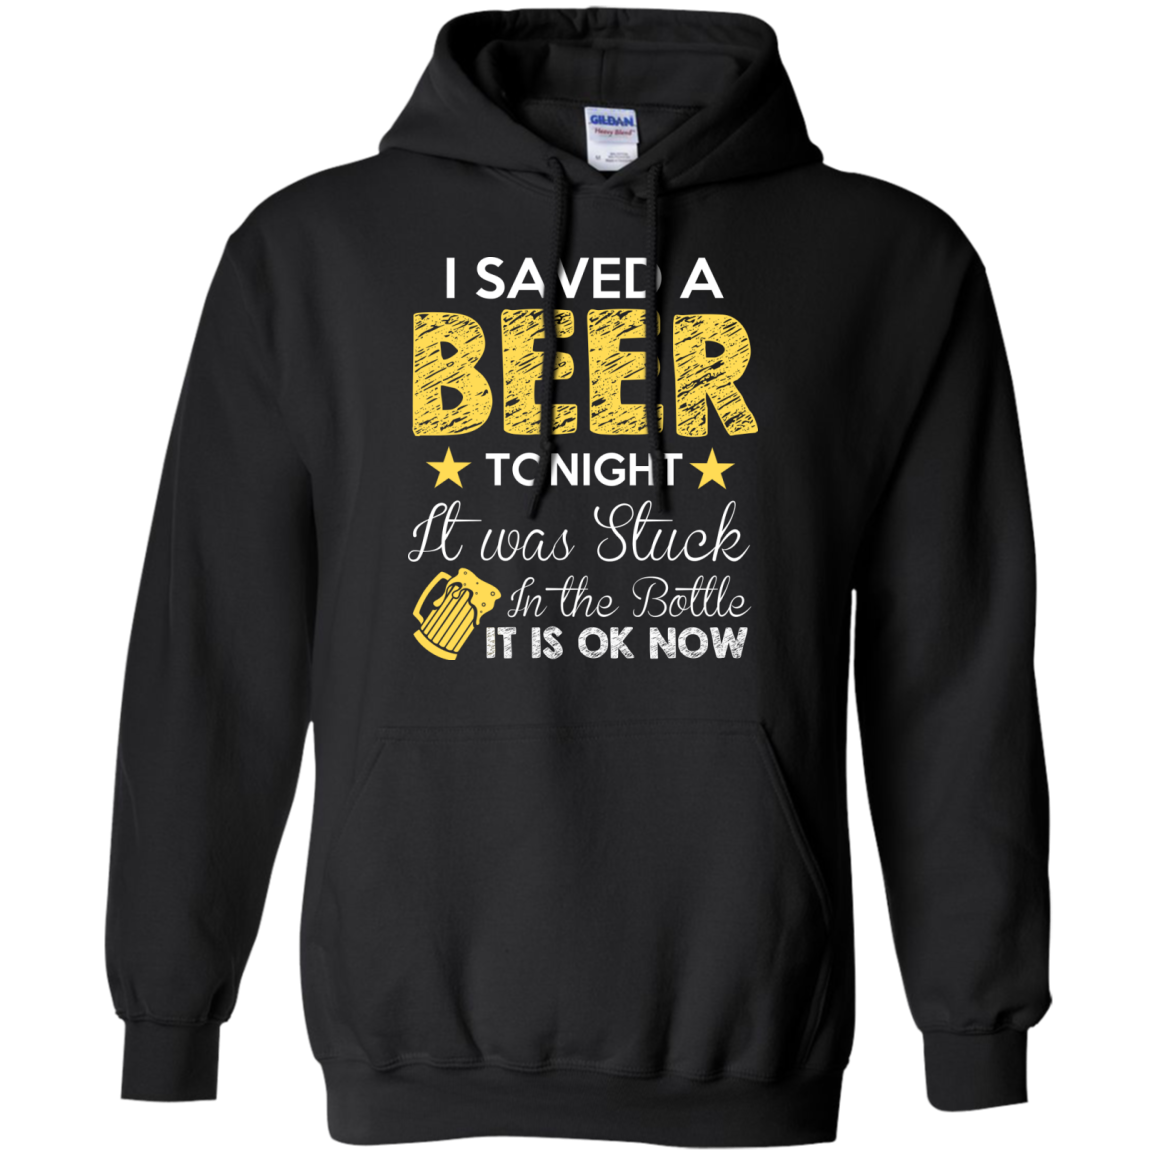 I Saved A Beer Tonight It Was Stuck In Bottle Ok Now TShirt - The Sun Cat